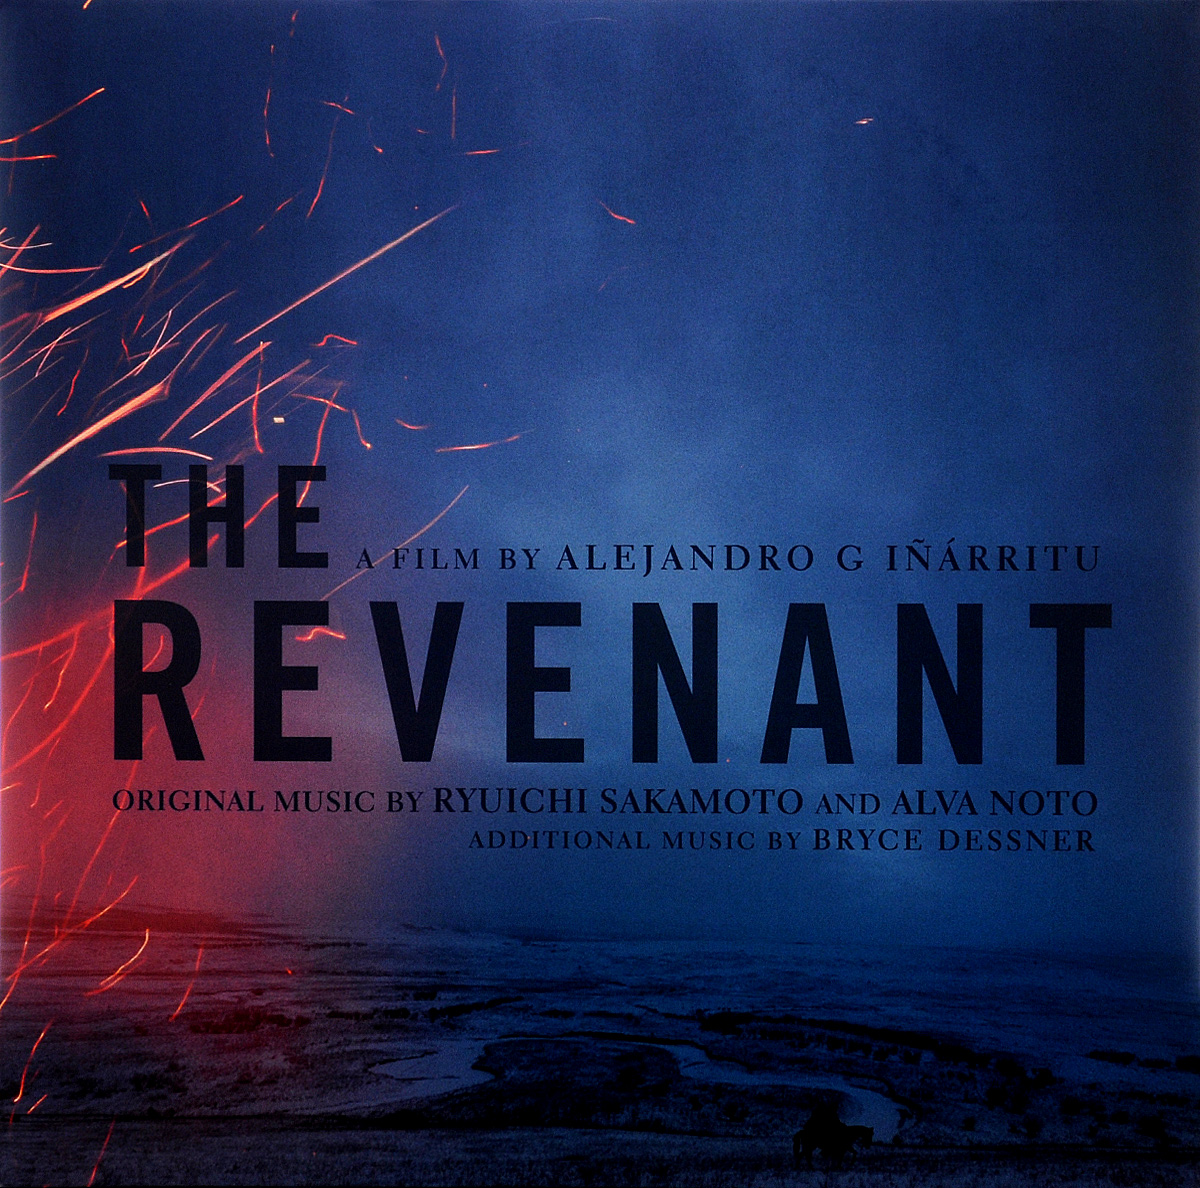 Ryuichi Sakamoto, Alva Noto, Bryce Dessner. The Revenant. Original Motion Picture Soundtrack (2 LP)